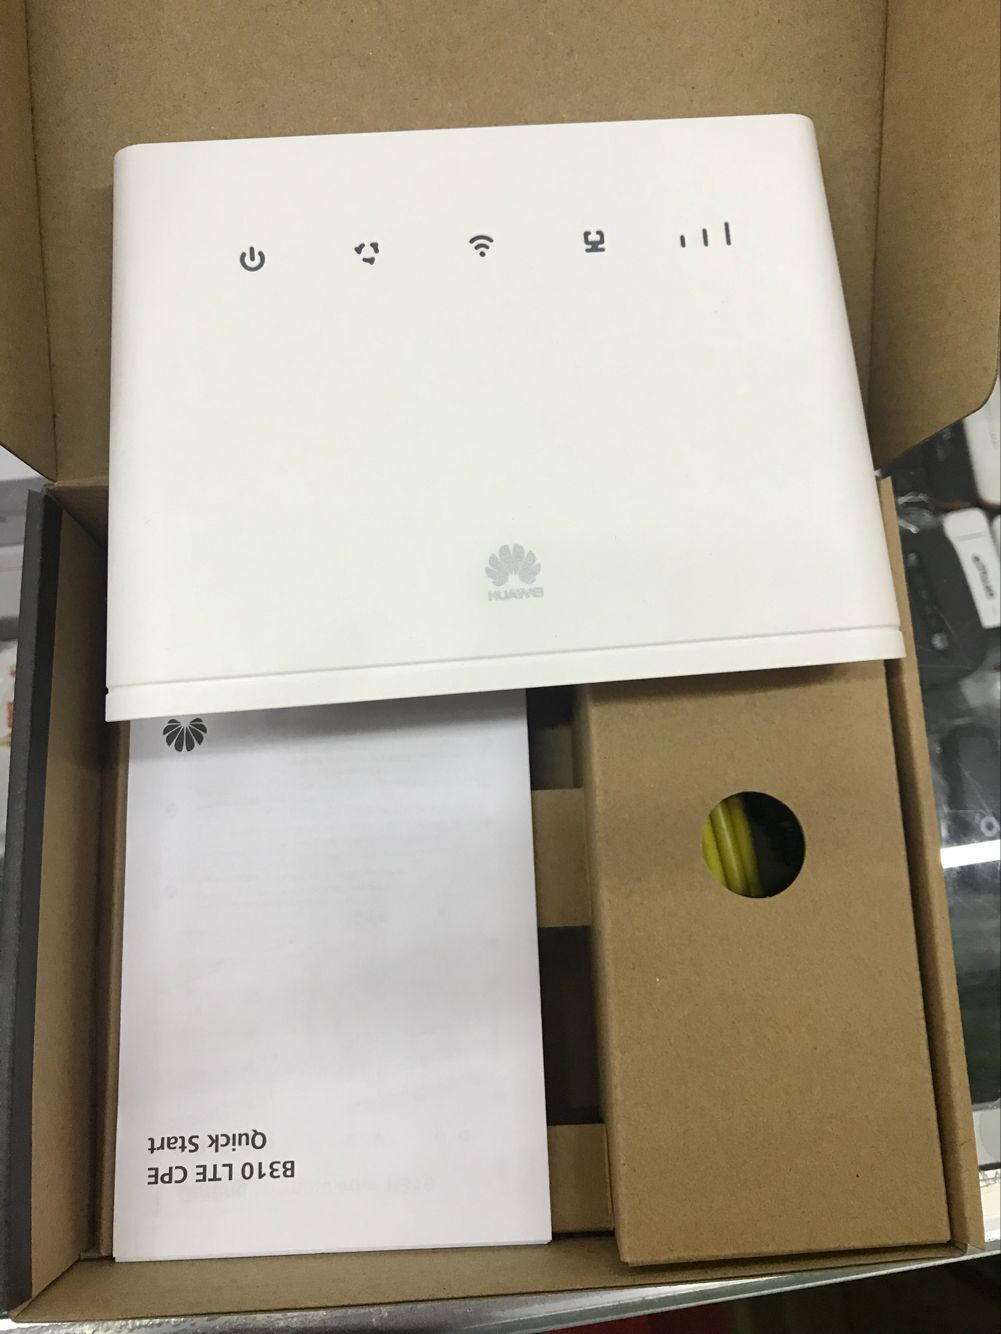 Unlocked New Arrival Huawei B310 B310s-518 150Mbps 4G LTE CPE WIFI ROUTER Modem with antennas pk b315 b310s good at MX/US/CA/PR 28 b310 31